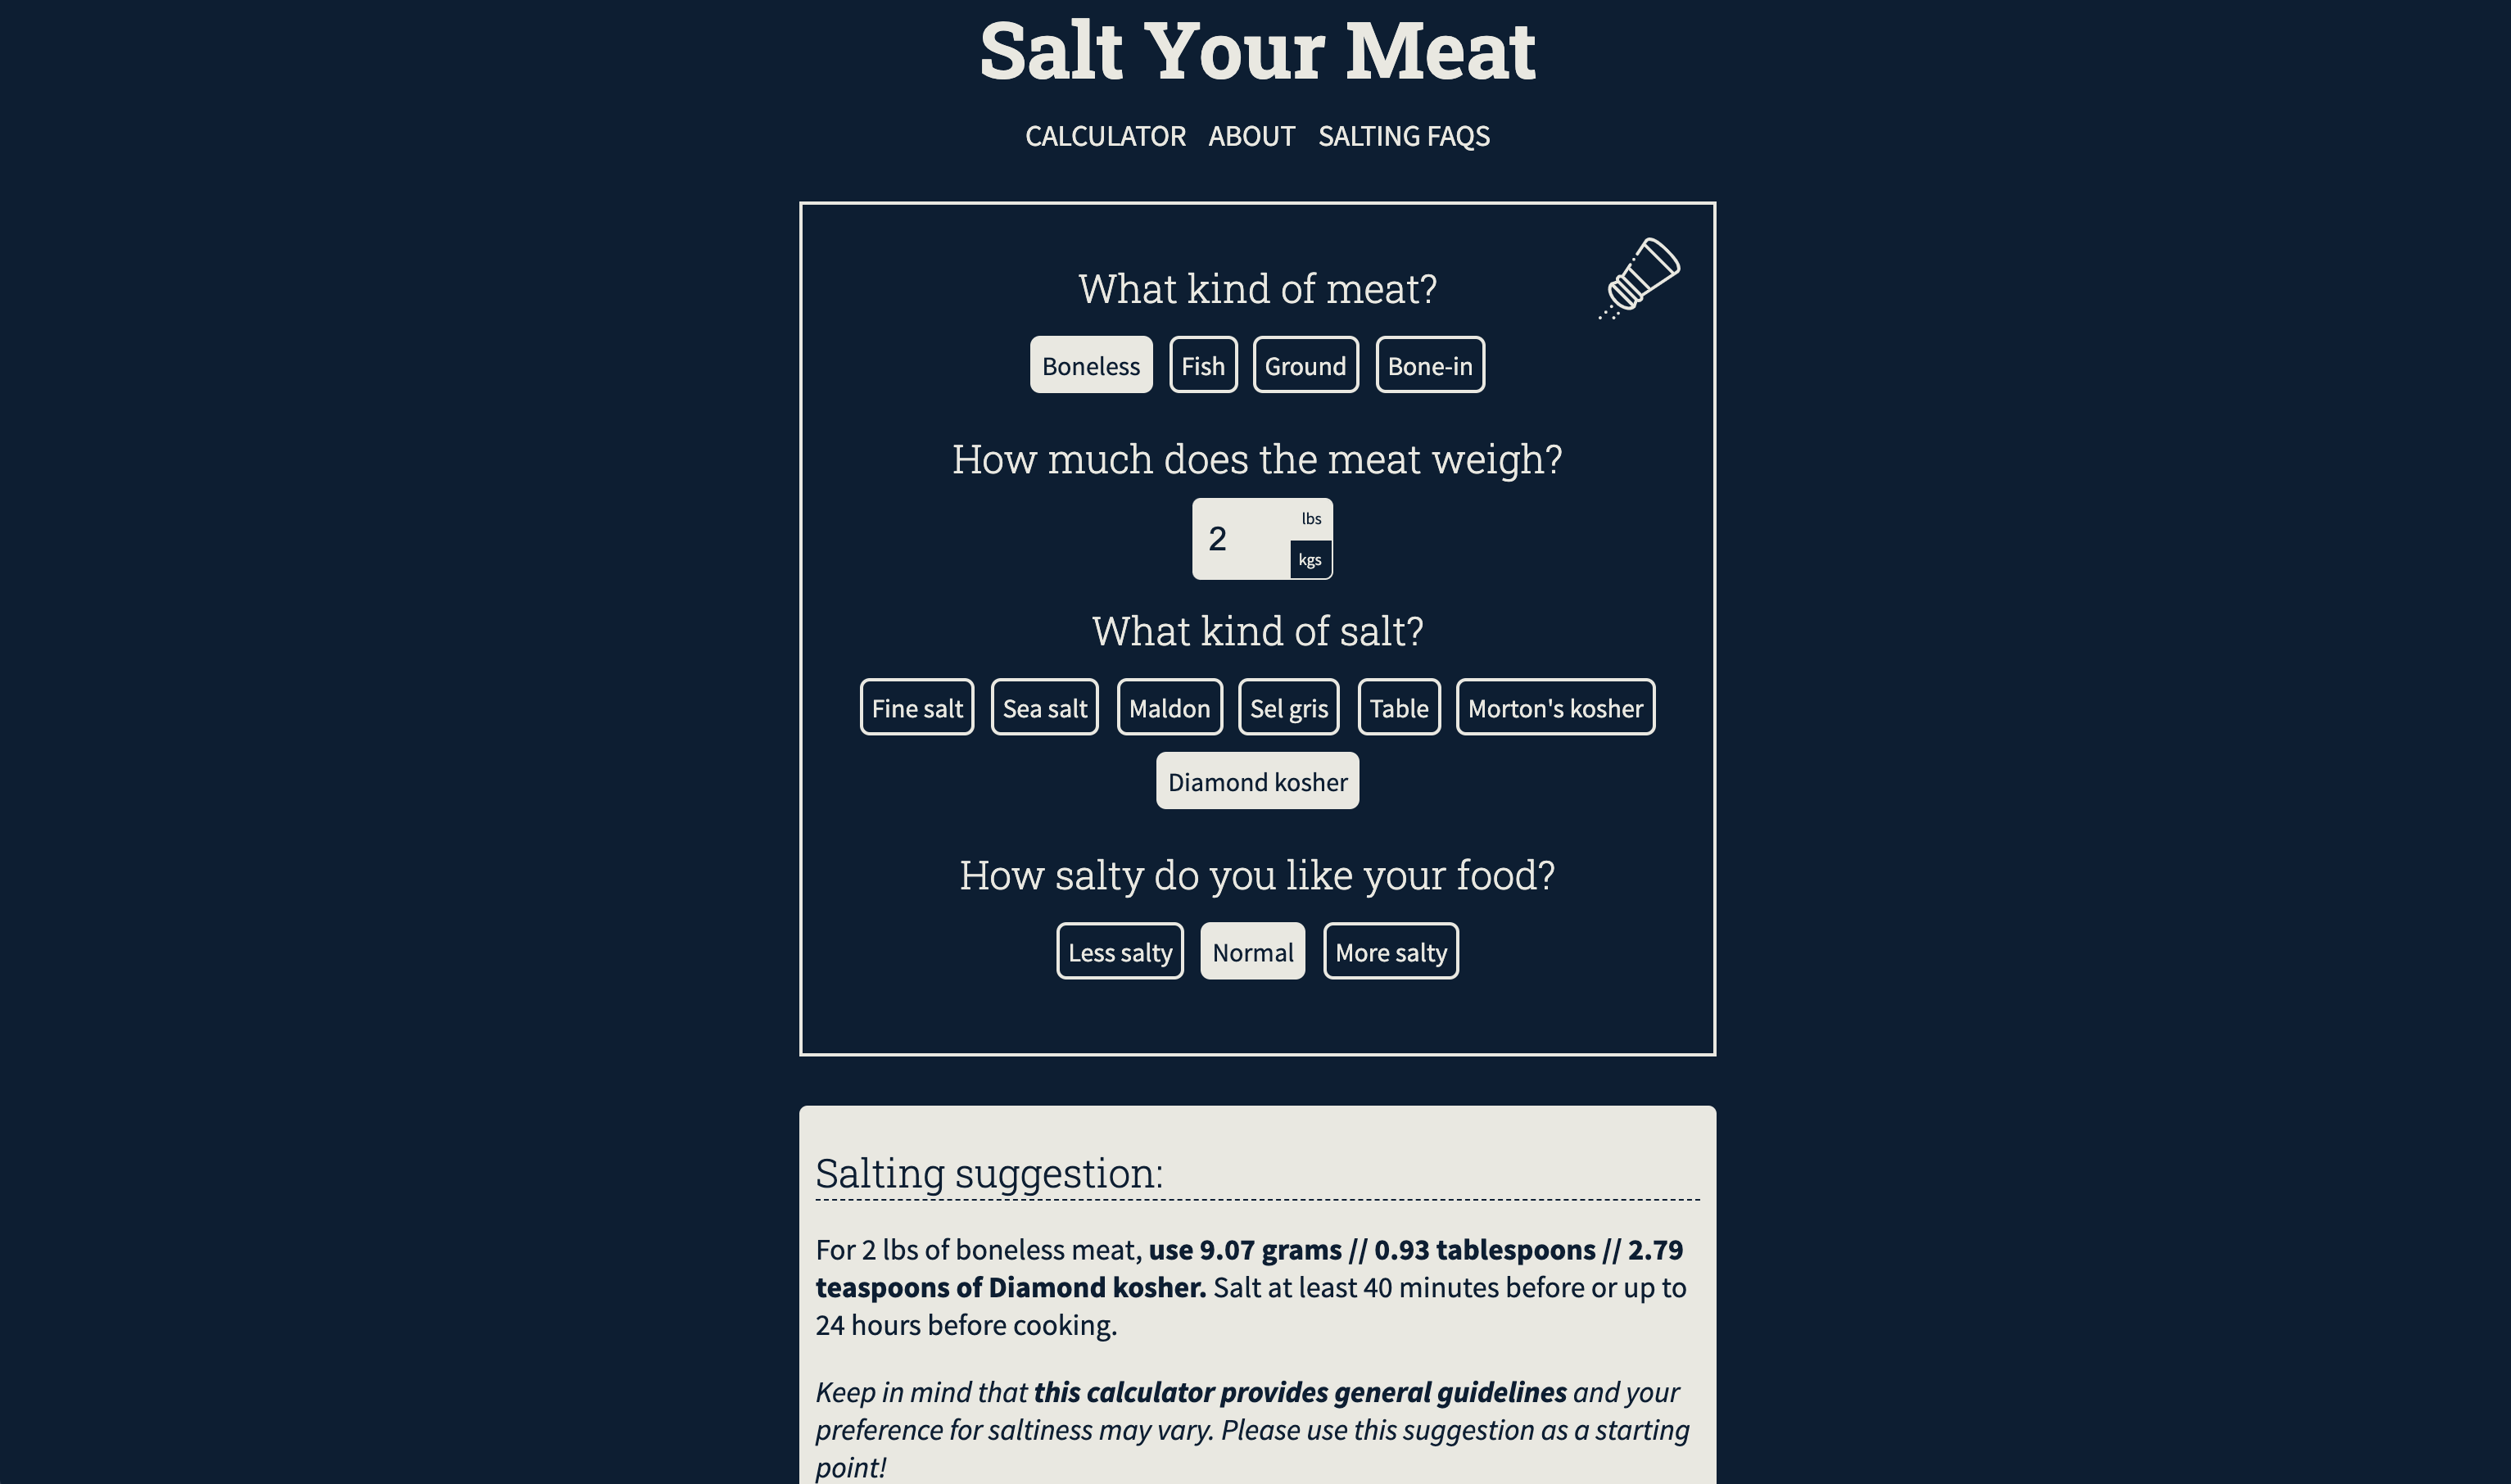 A screenshot of saltyourmeat.com that shows the logo, calculator, and salting instructions.